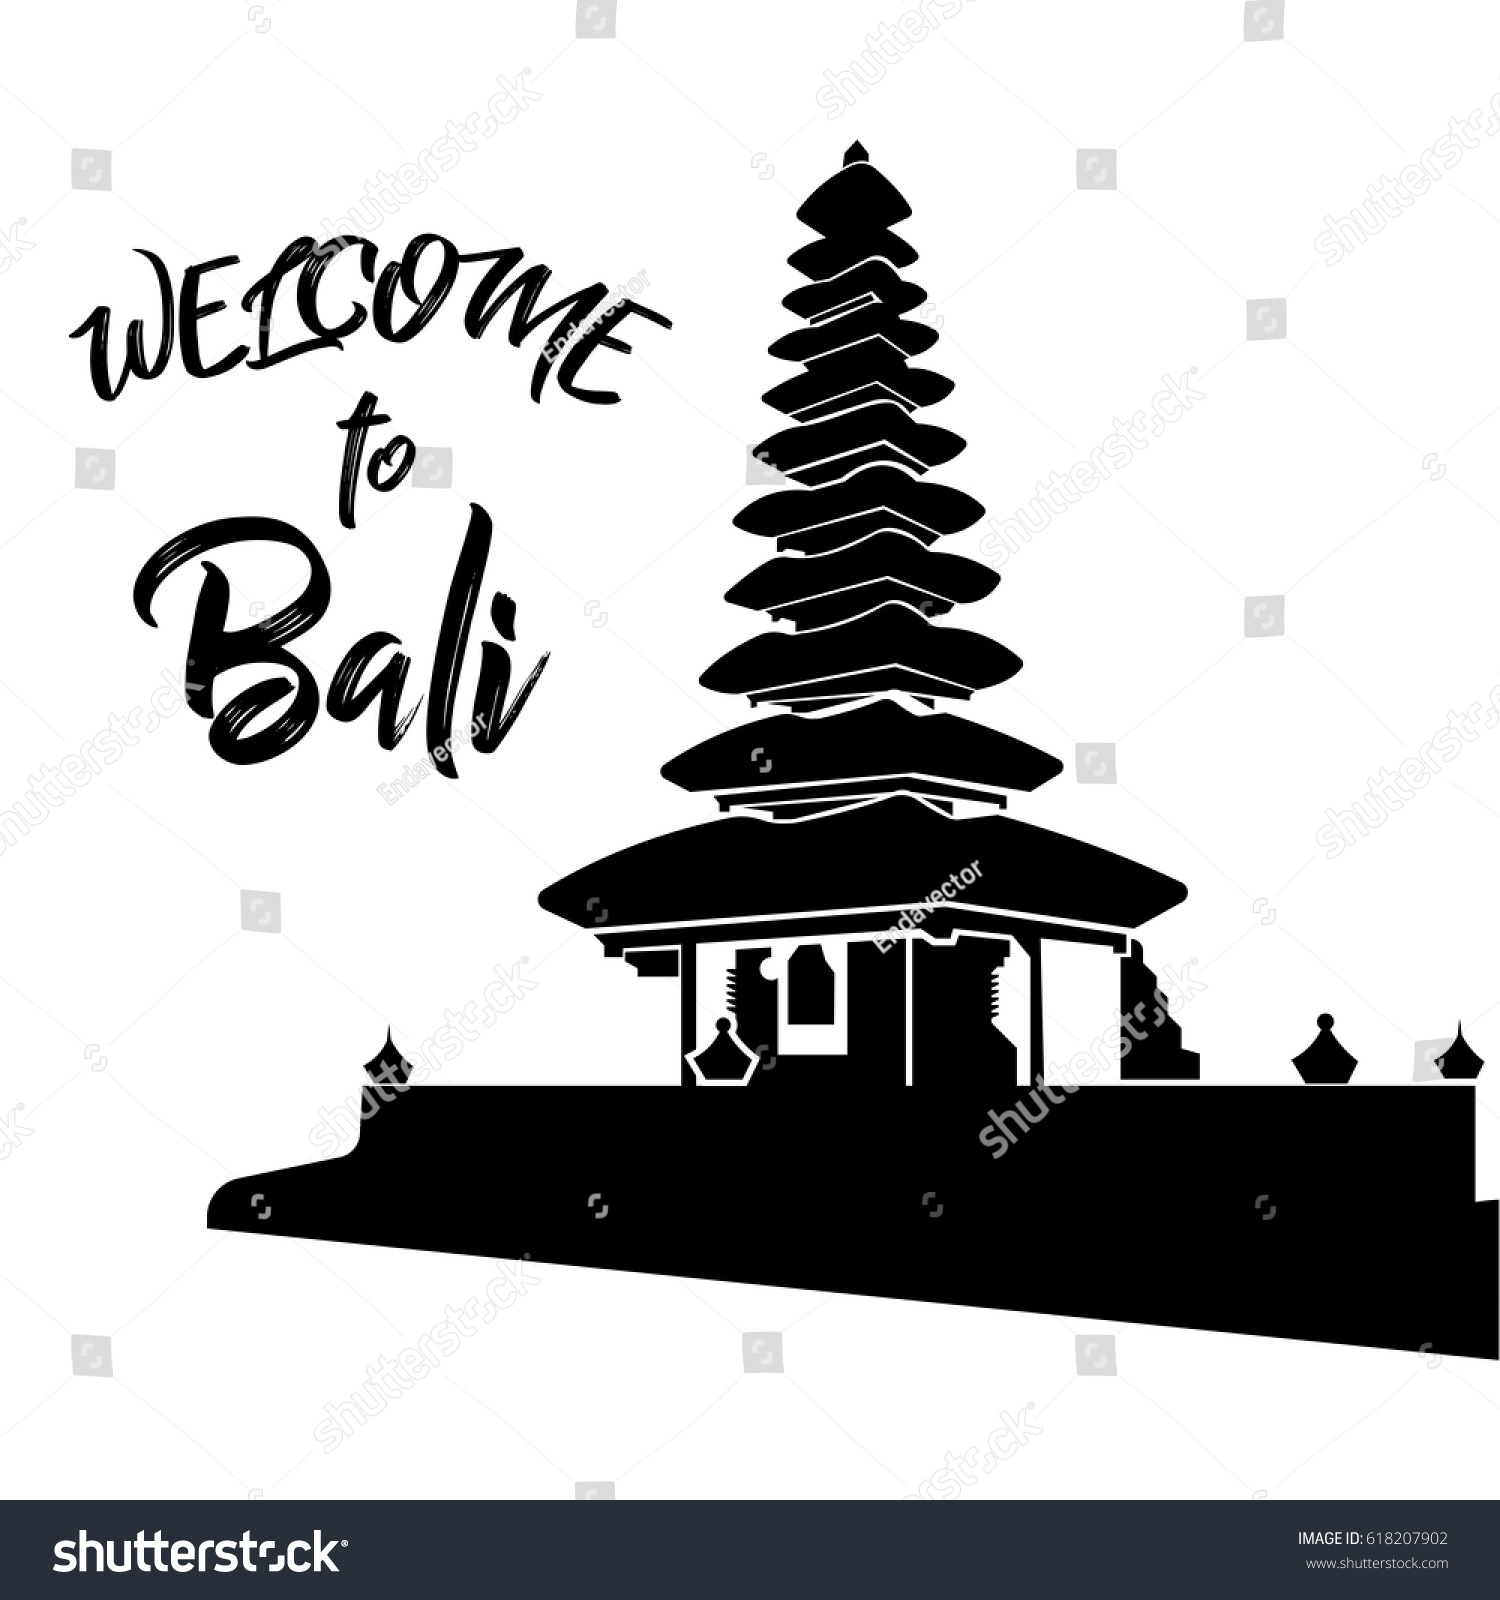 Vector image welcome bali stock vector hd royalty free 618207902 vector image welcome to bali altavistaventures Gallery